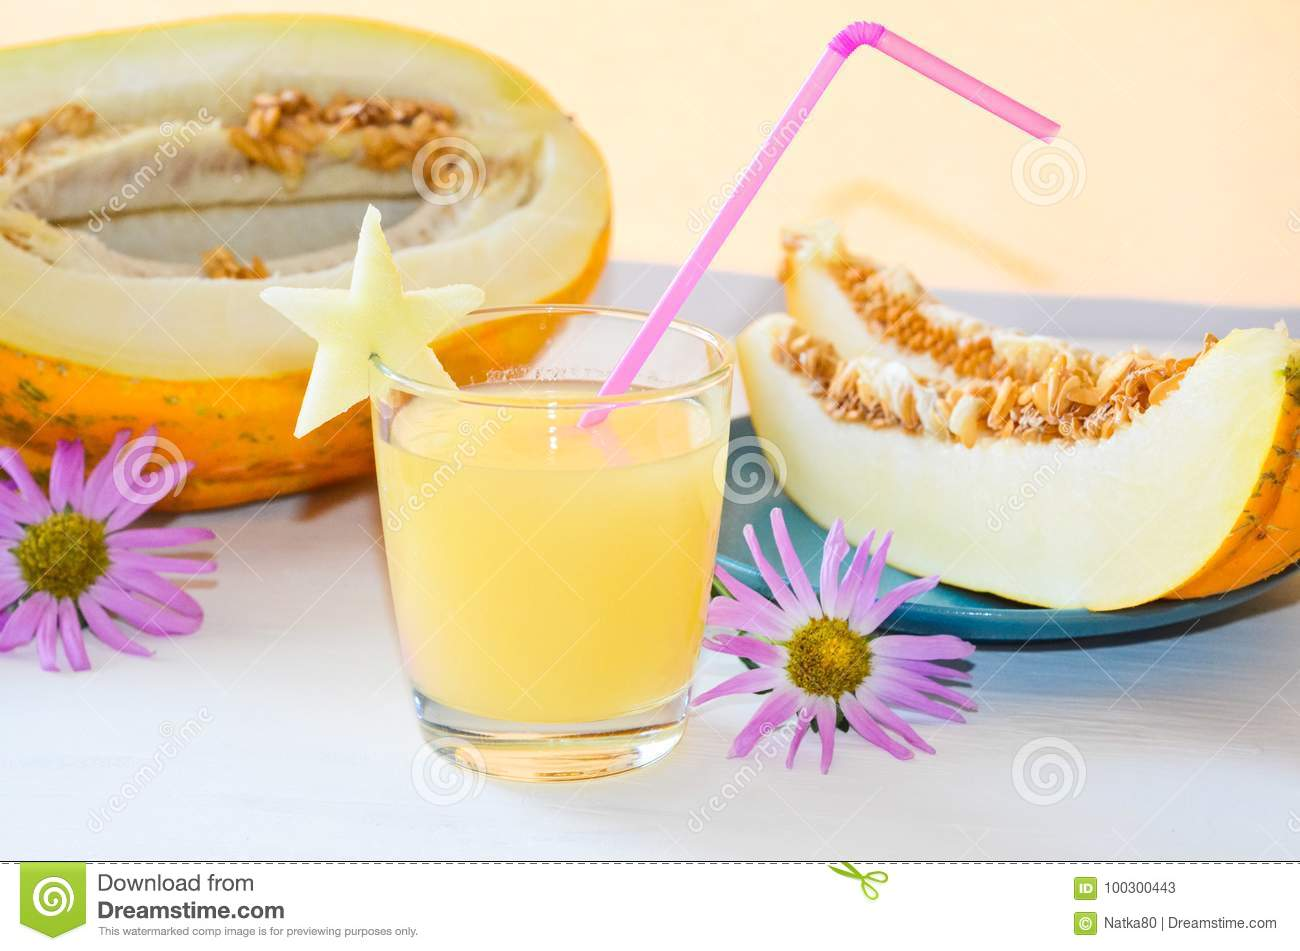 Cut melon in half next pieces of melon on a plate glass of smoothie with a straw of melon and autumn flowers asters